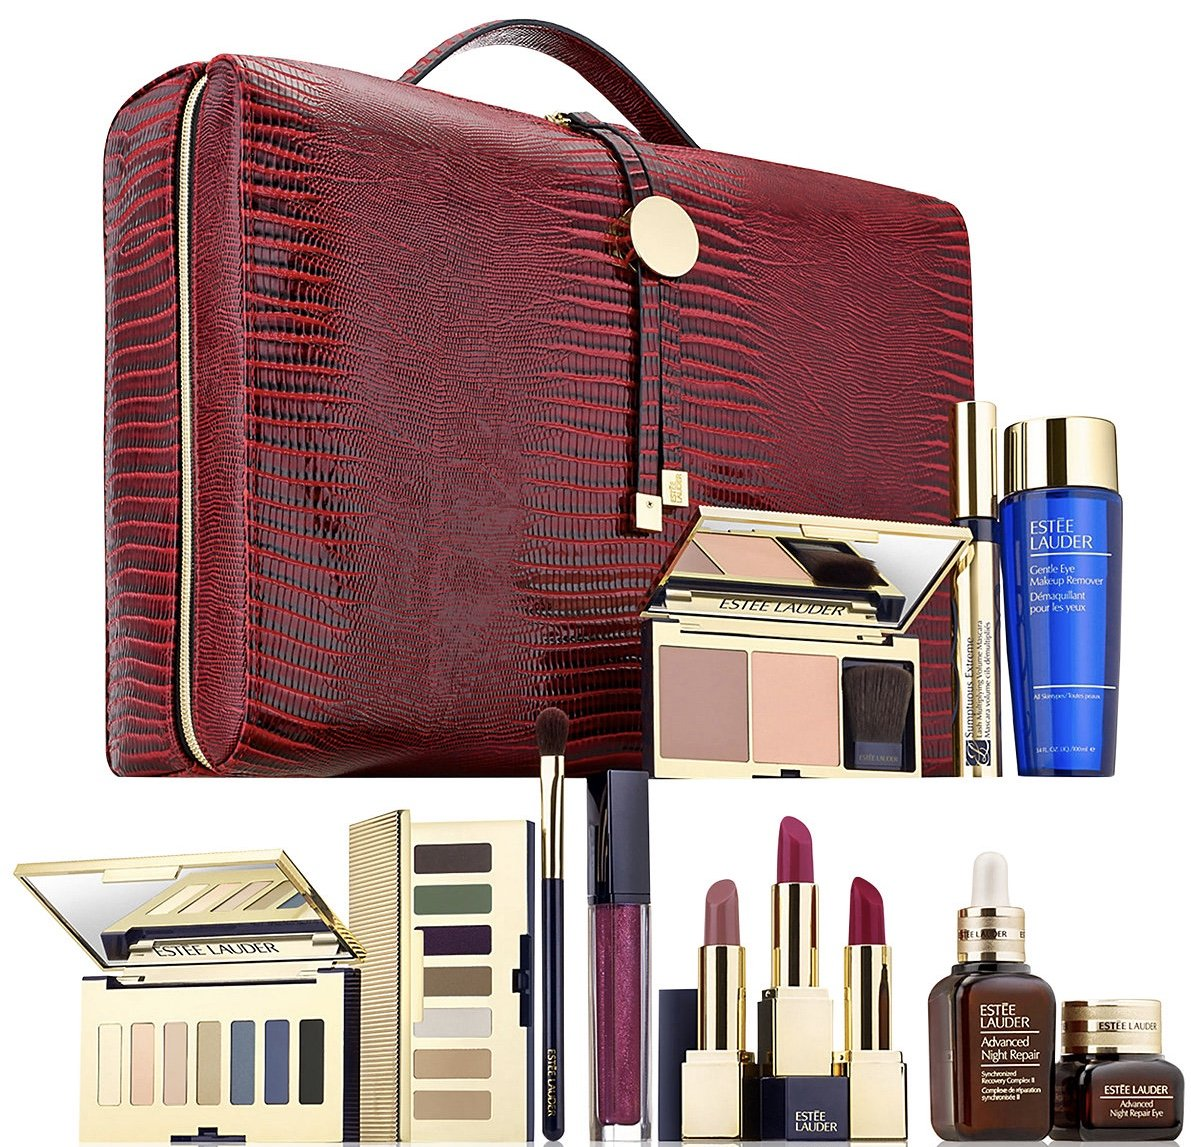 Estee Lauder Blockbuster 2017 Holiday Make Up Gift Set w/Train Case -Smoky Noir